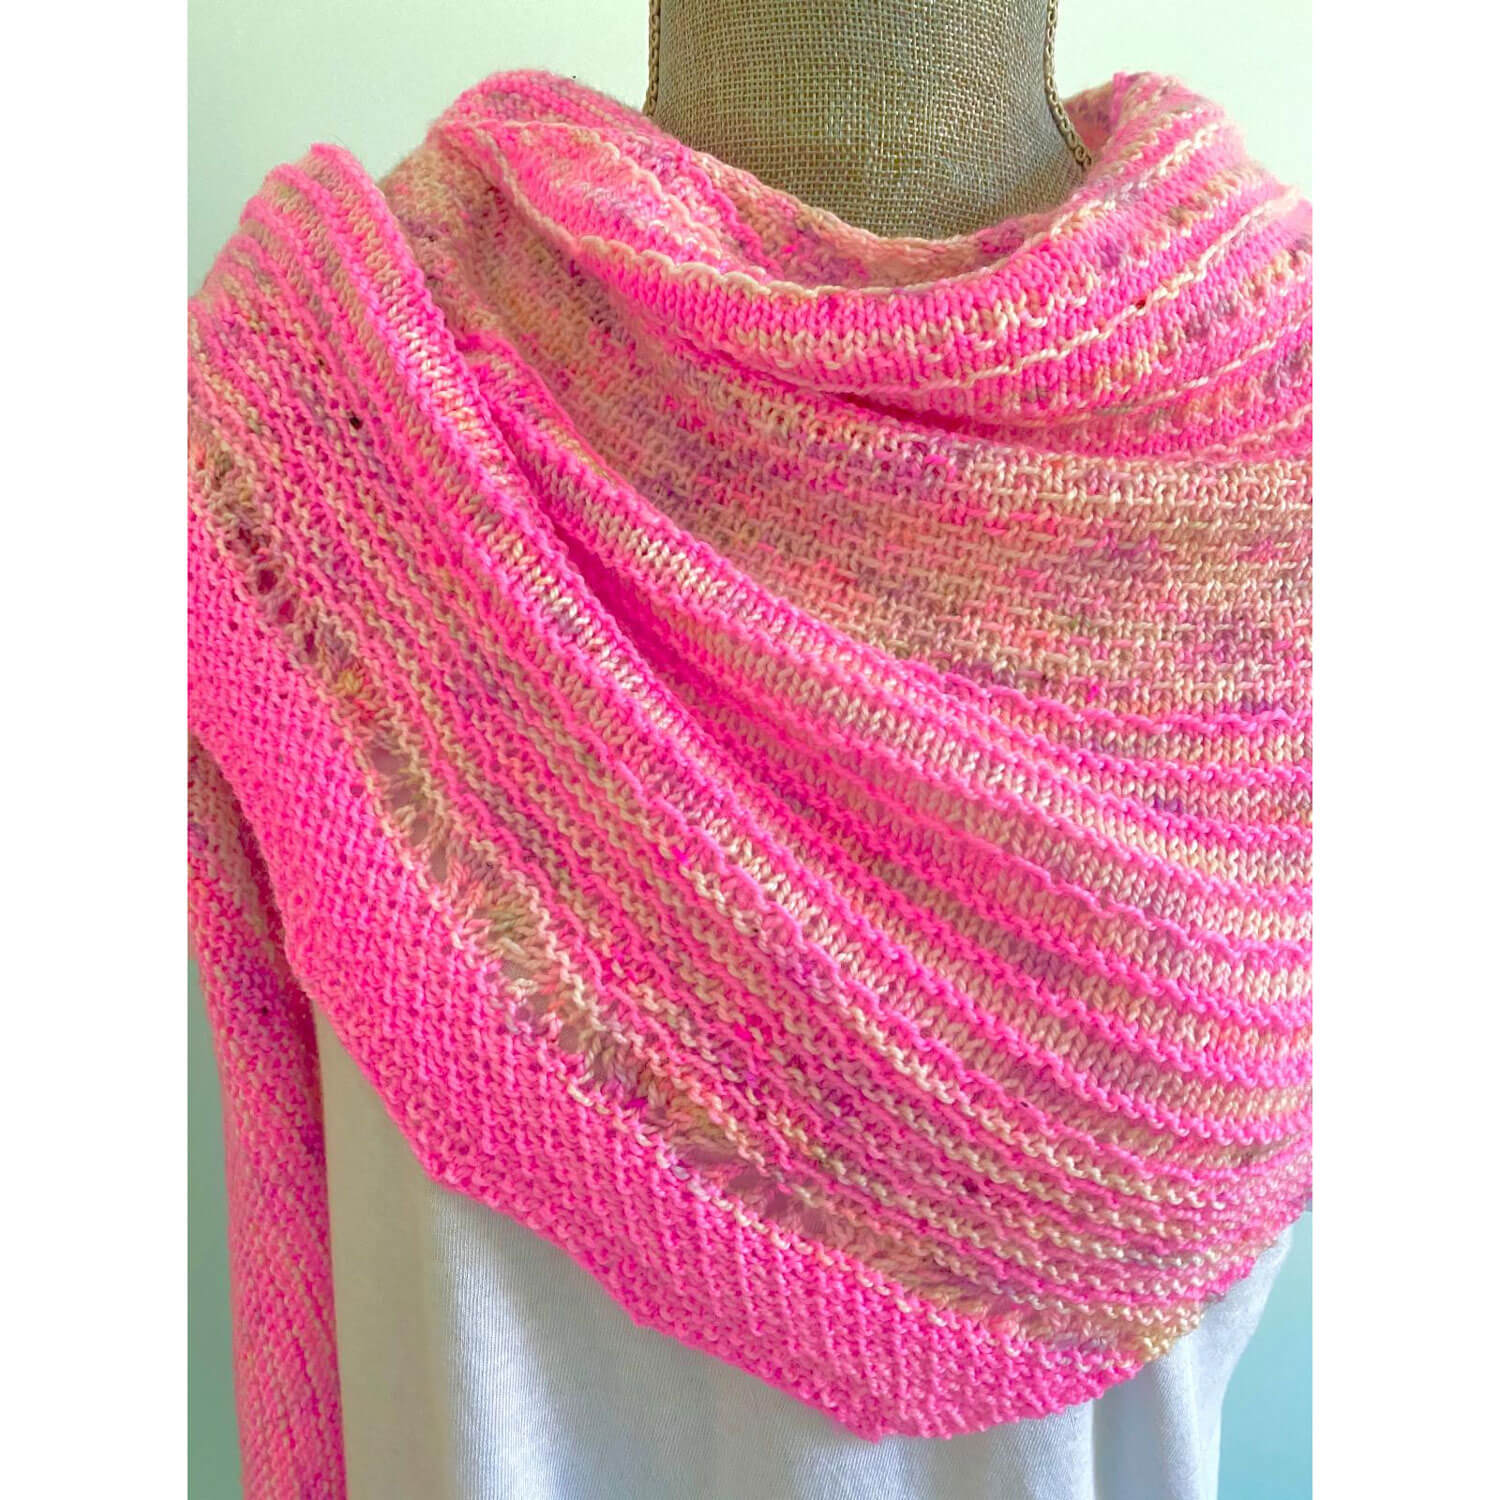 Hug Shot Shawl Kit - Casapinka NEW Pattern - Emma's Yarn Practically Perfect Sock | Yarn Worx